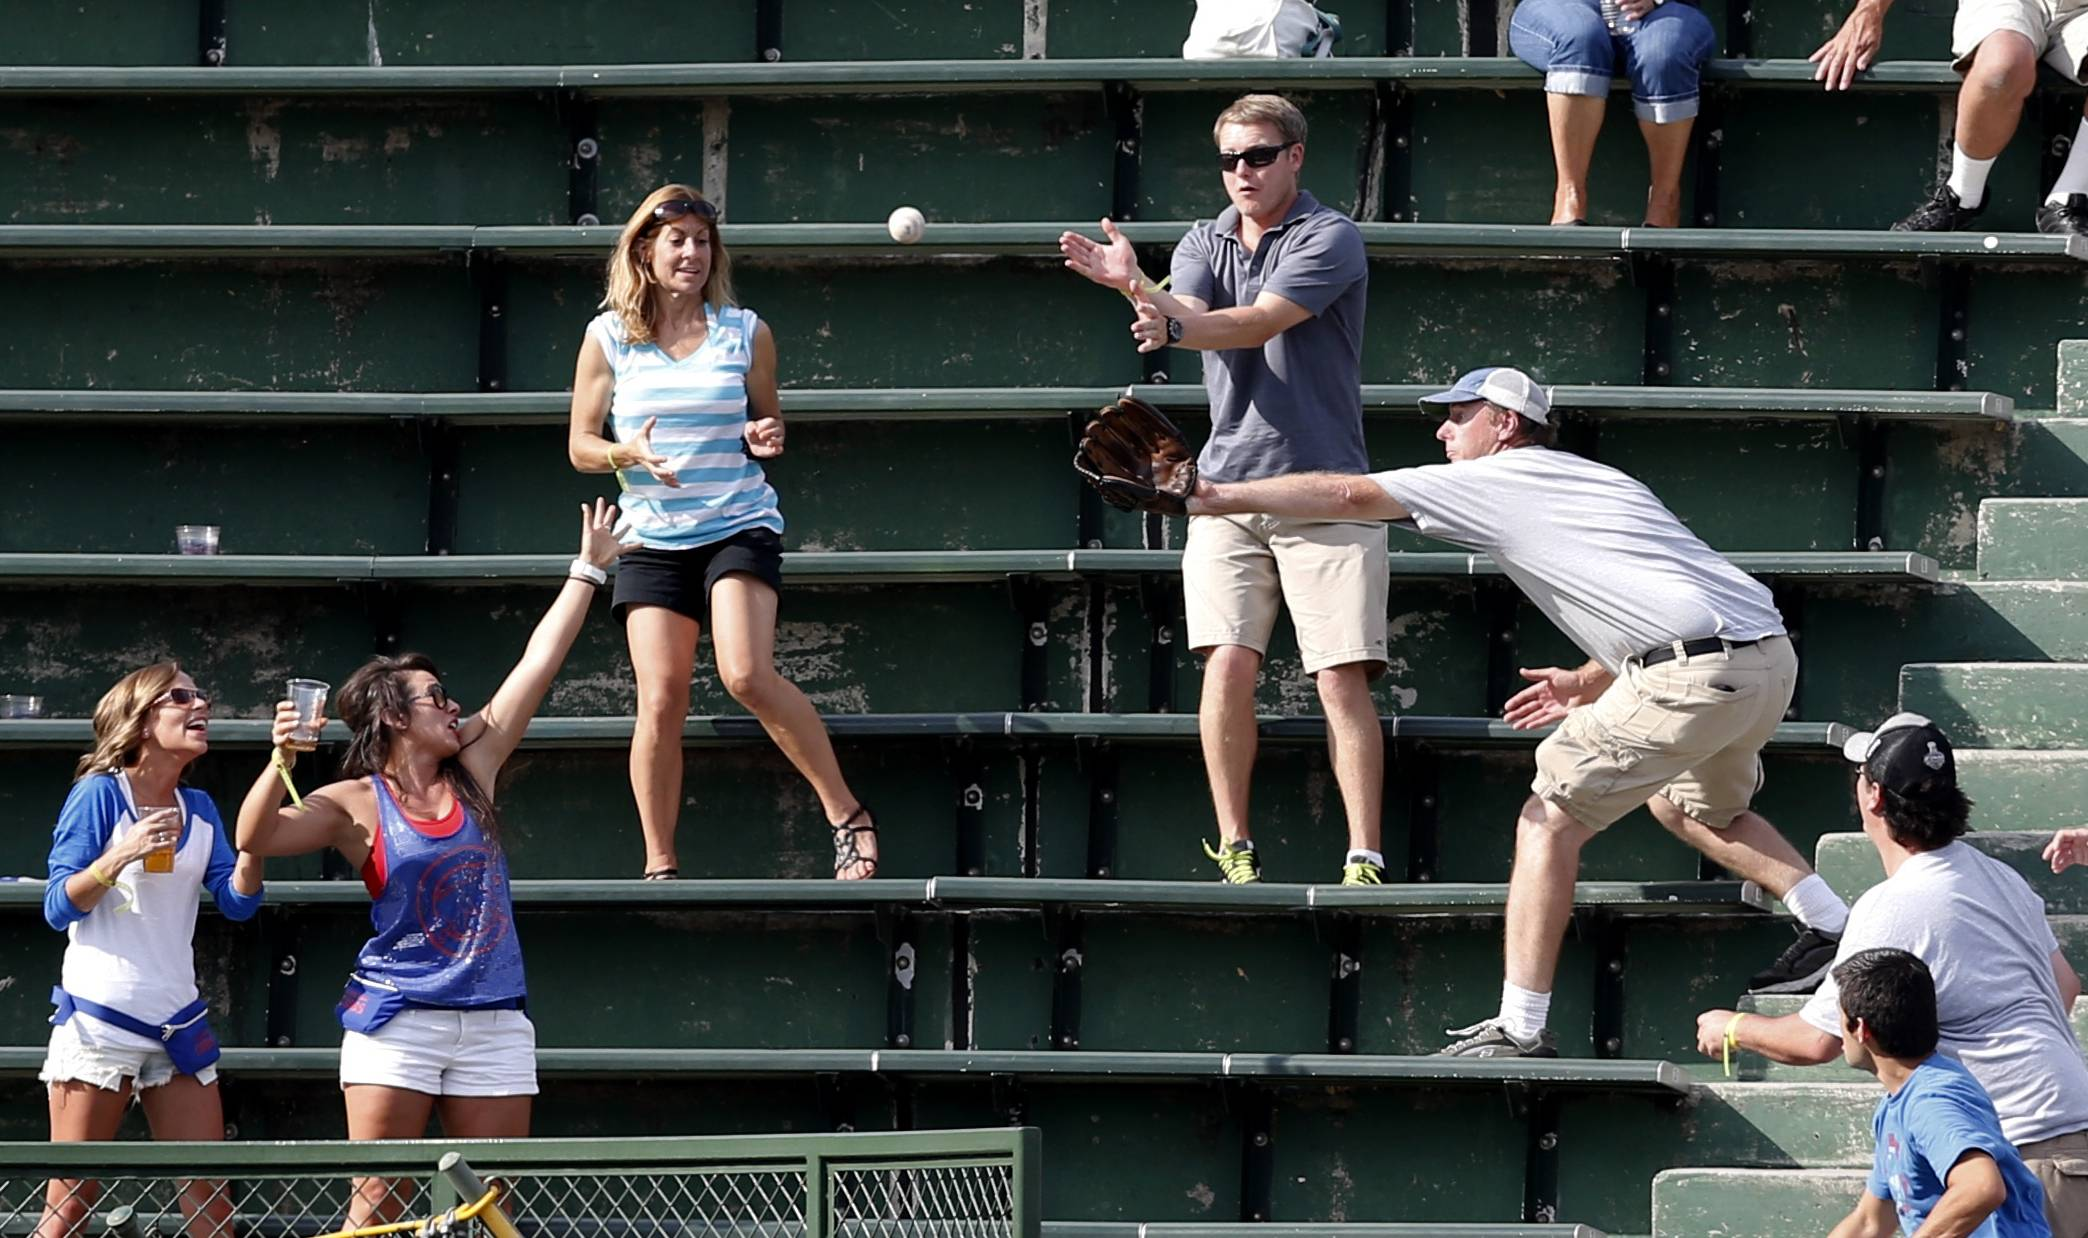 Baseball fans in Wrigley Field's left field bleachers scramble for a batted ball during a Chicago Cubs baseball game in Chicago. Wrigley was the first ballpark where fans could keep foul balls.